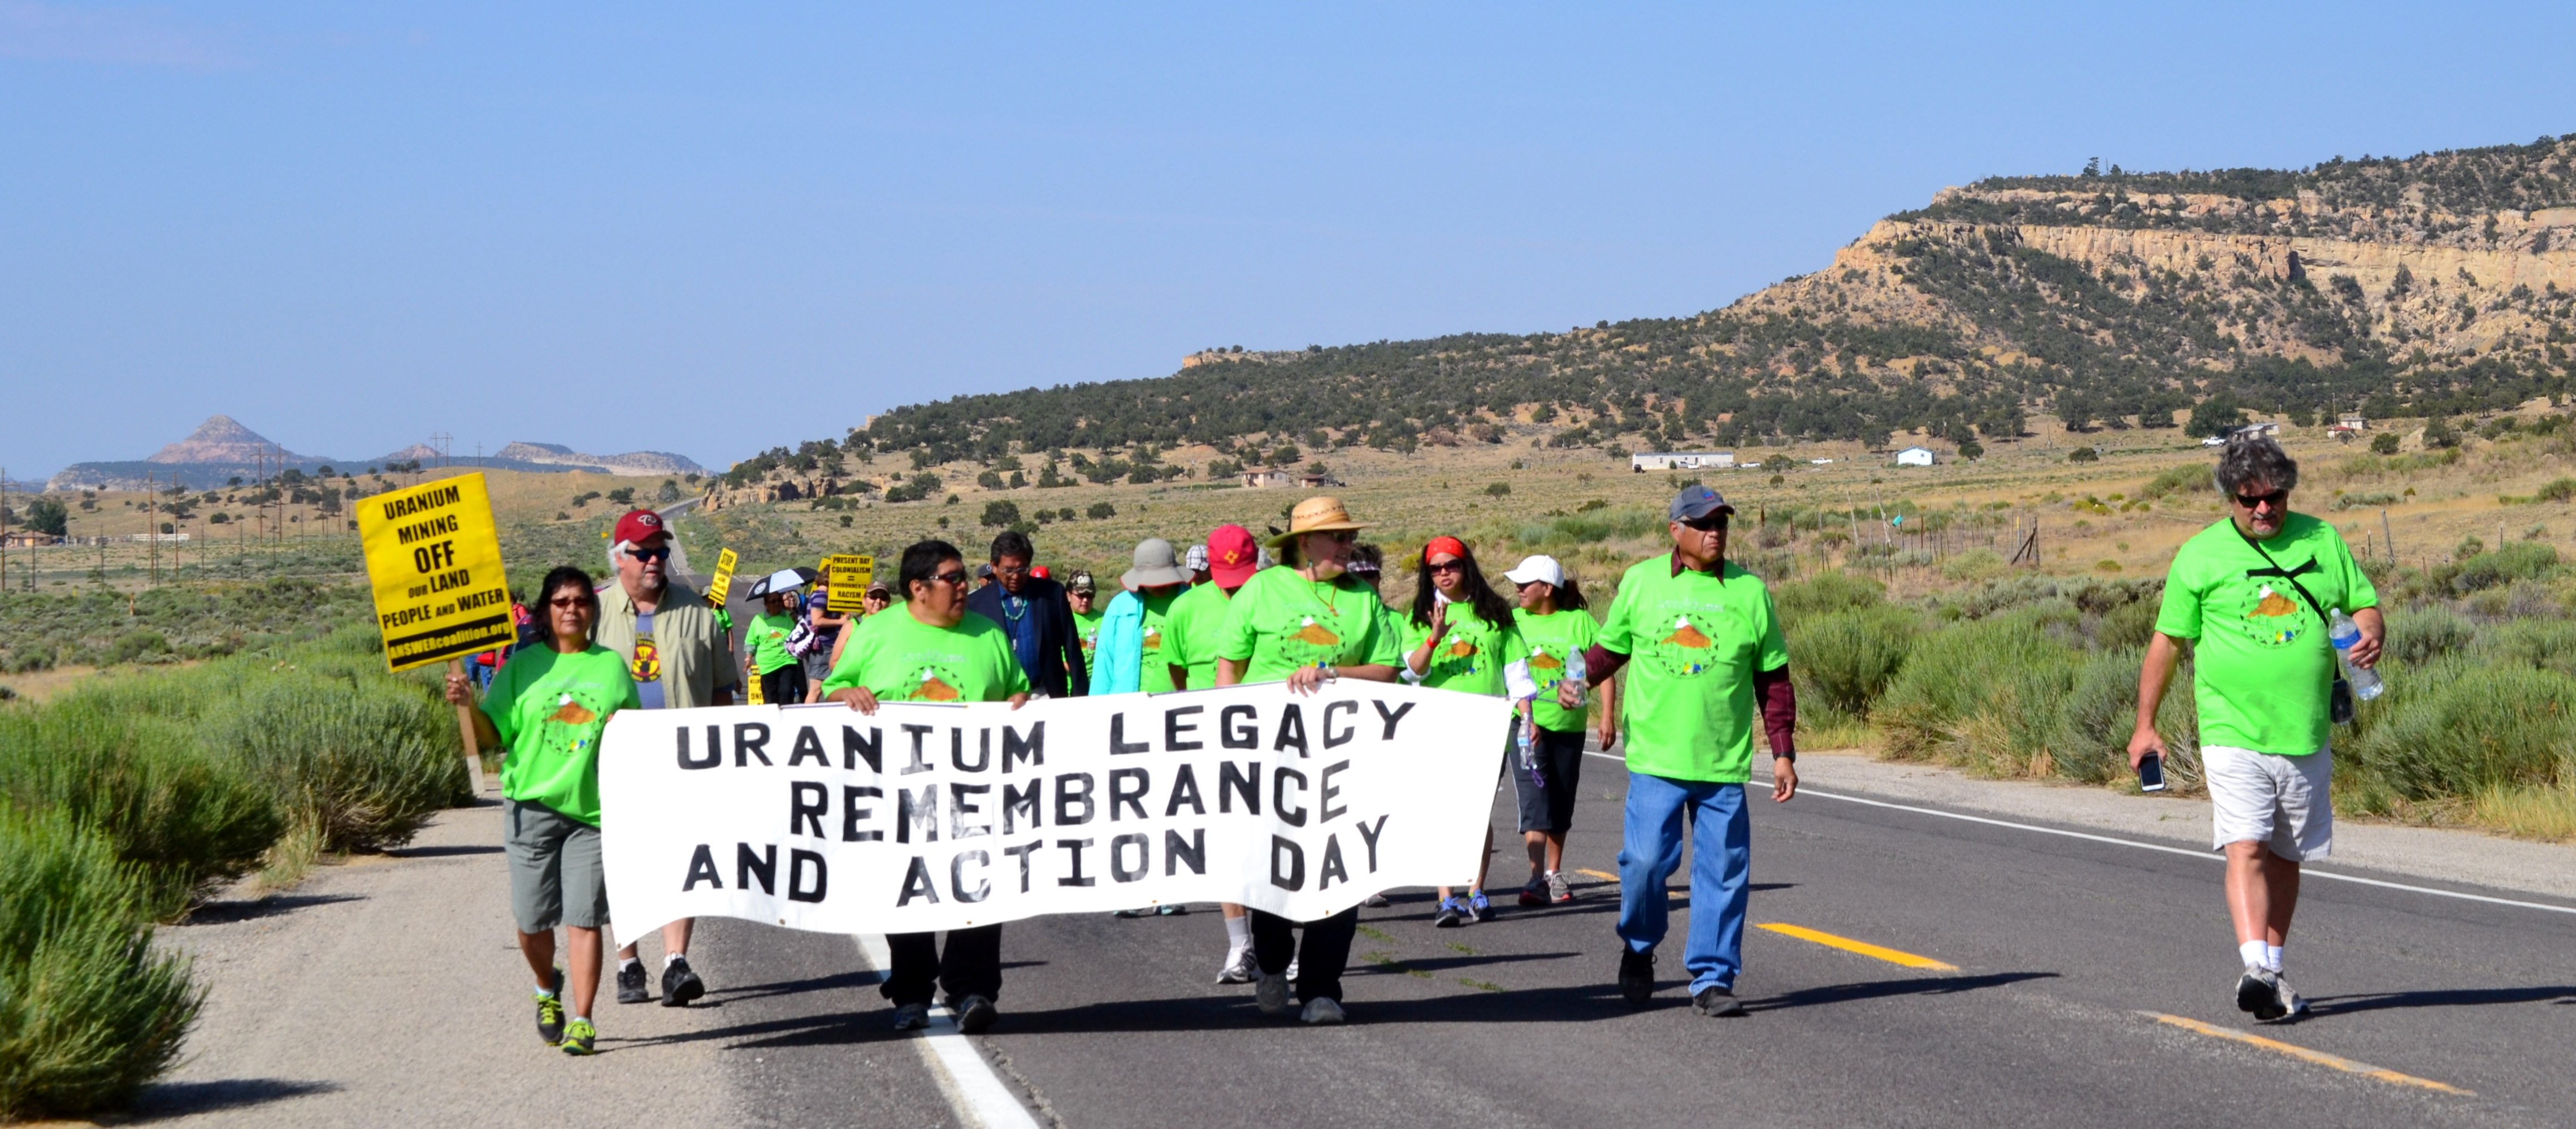 On July 19, 2014, people from across the Navajo Reservation and their supporters remembered the July 16, 1979, radioactive disaster with a walk to the United Nuclear Corporation uranium tailings flood site and memories of loved ones that died from cancer related to the former uranium mining in the area and the radioactive flood. Photo by Marley Shebala. (Please provide proper photo credit when reusing photo.)